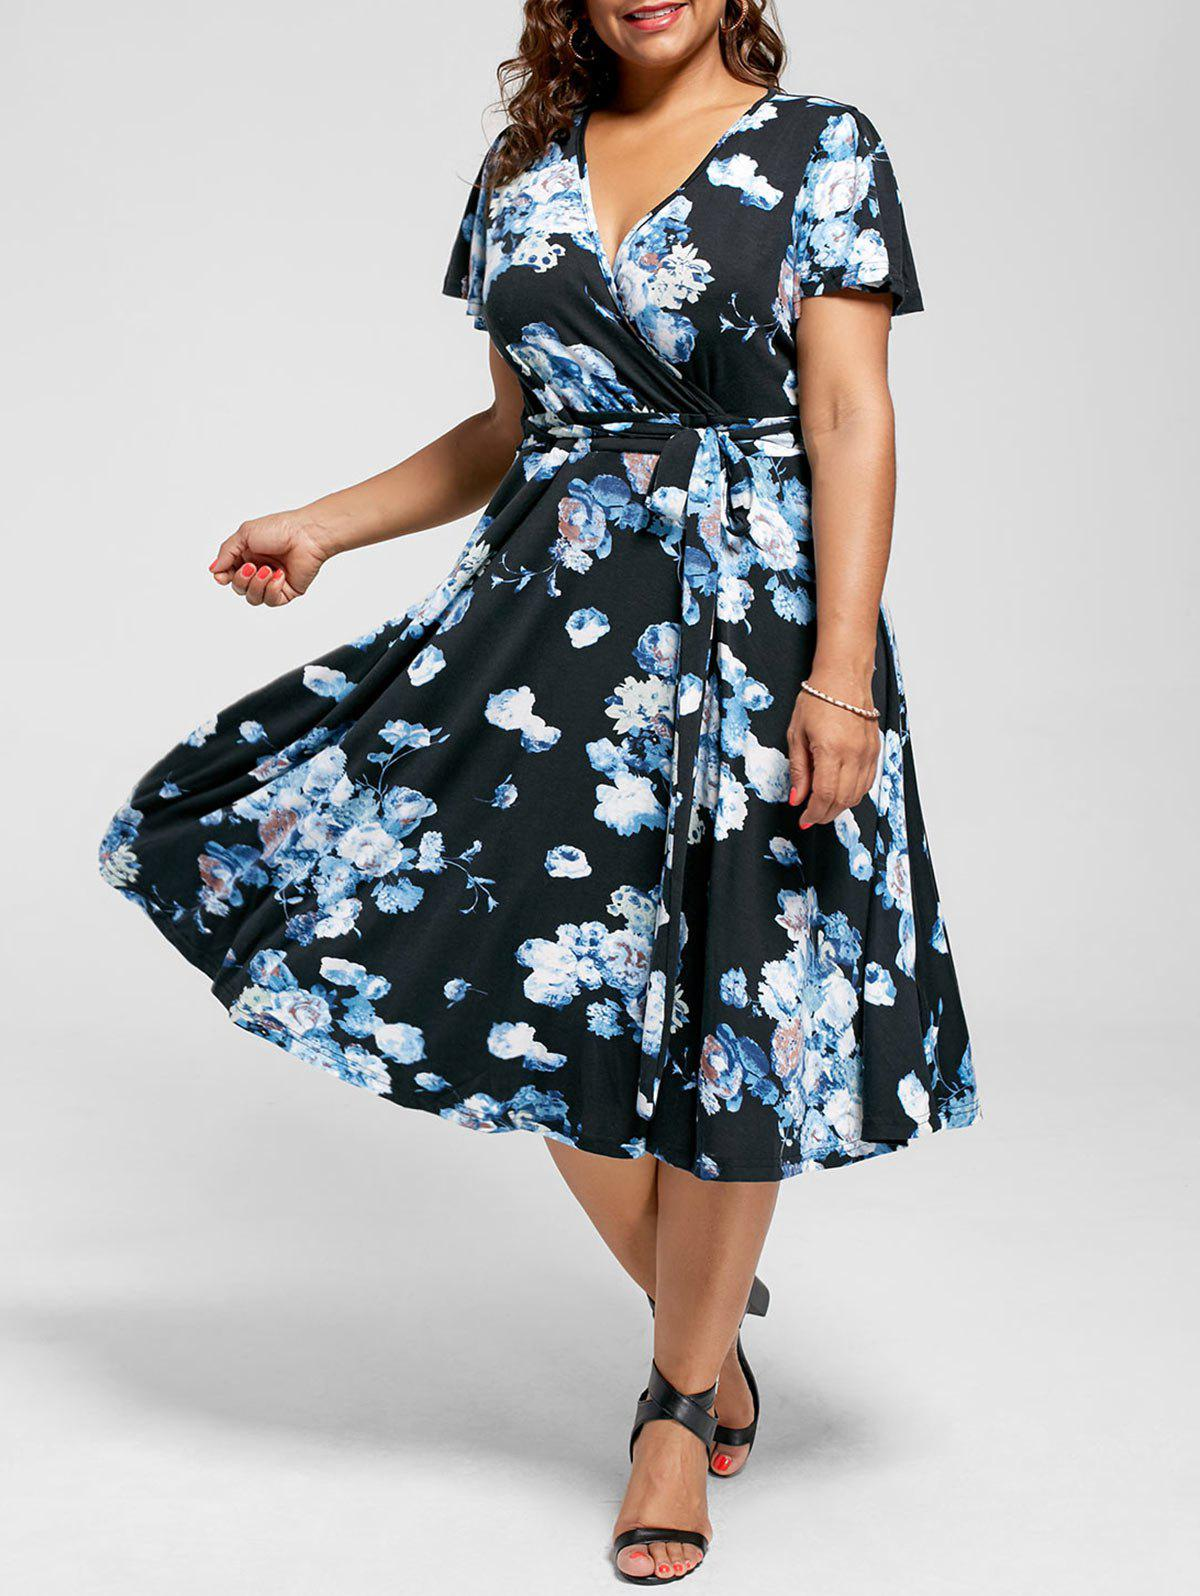 Plus Size V Neck Floral Tea Length DressWOMEN<br><br>Size: 8XL; Color: BLUE; Style: Cute; Material: Polyester; Silhouette: A-Line; Dresses Length: Mid-Calf; Neckline: V-Neck; Sleeve Length: Short Sleeves; Pattern Type: Floral; With Belt: Yes; Season: Summer; Weight: 0.4300kg; Package Contents: 1 x Dress  1 x Belt;